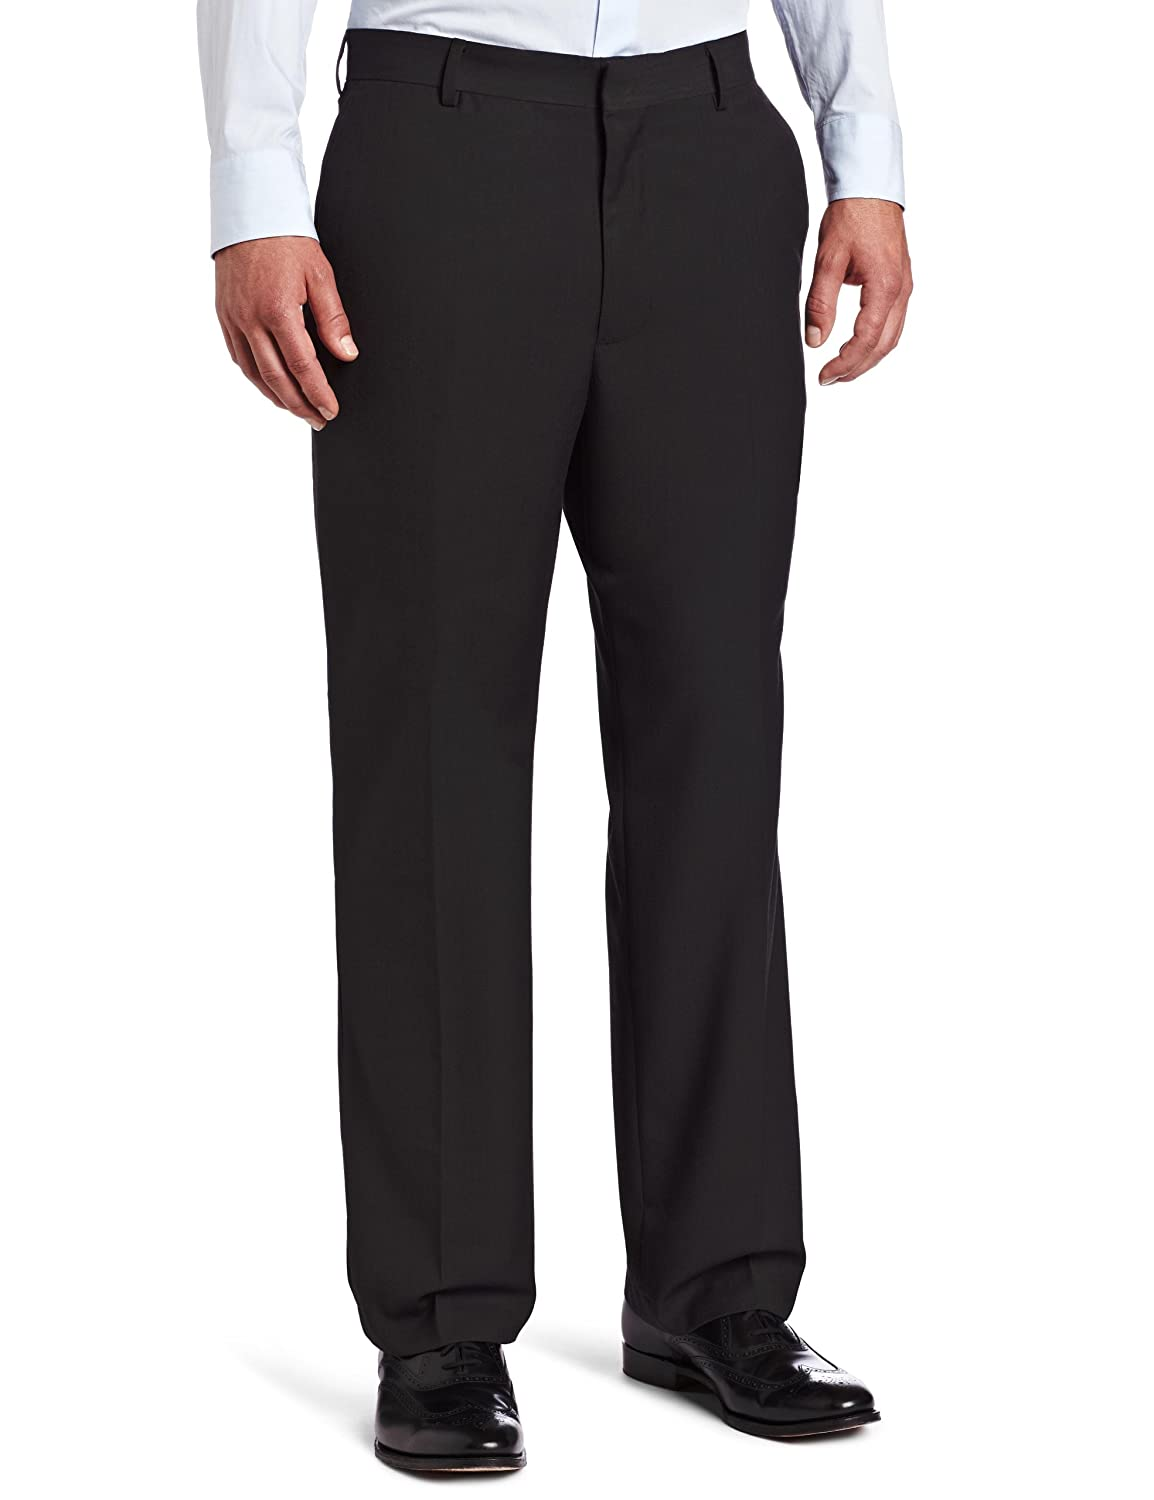 44W x 30L Coal Arrow Mens Herringbone Flat Front Pant